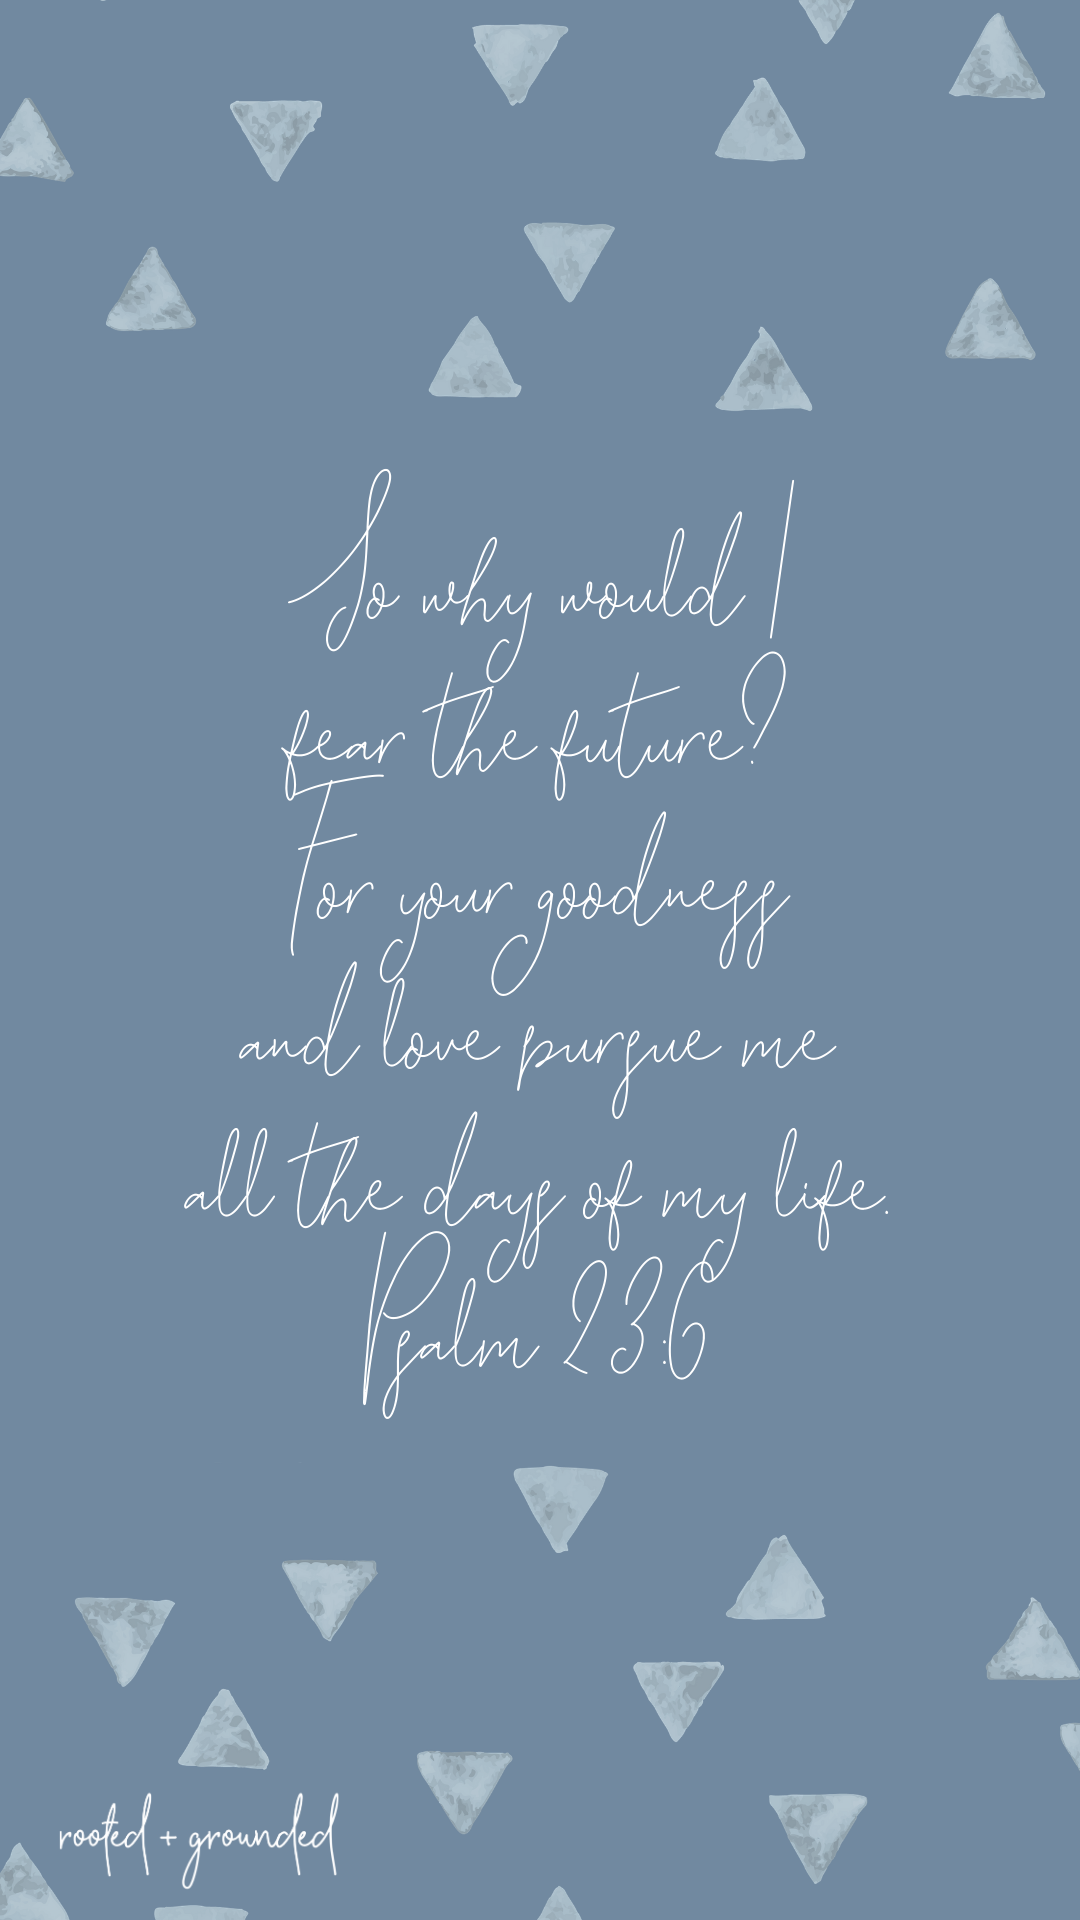 why would I fear the future Christian iPhone Wallpaper